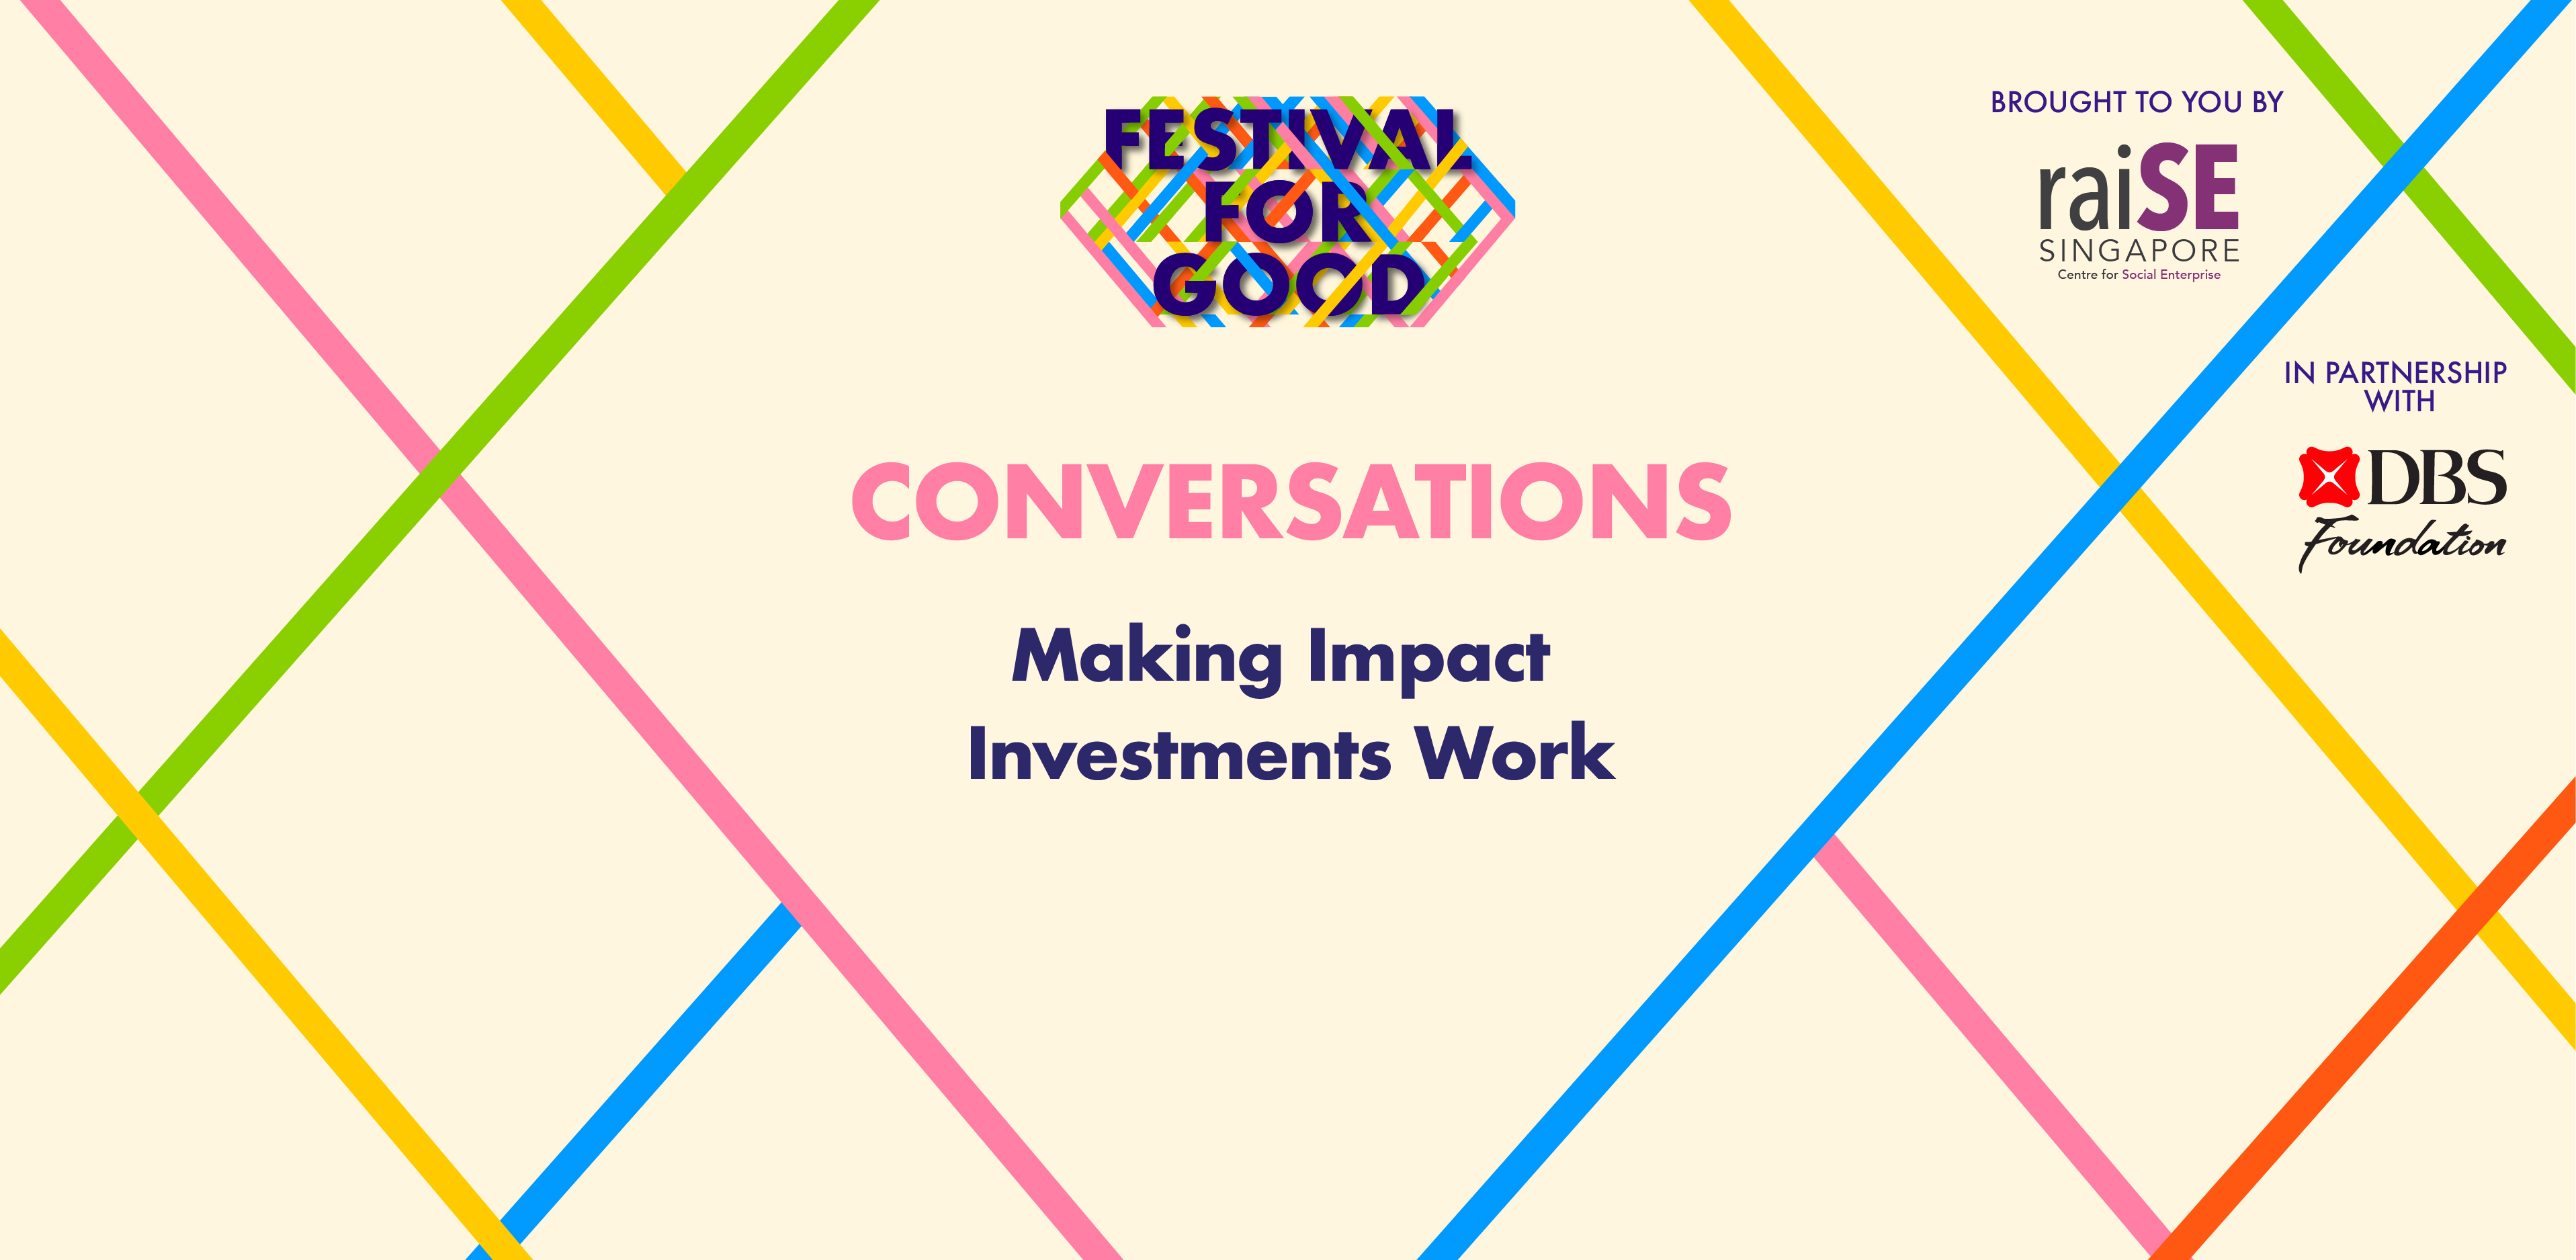 making-impact-investments-work_0_97499200_1603115184 Events